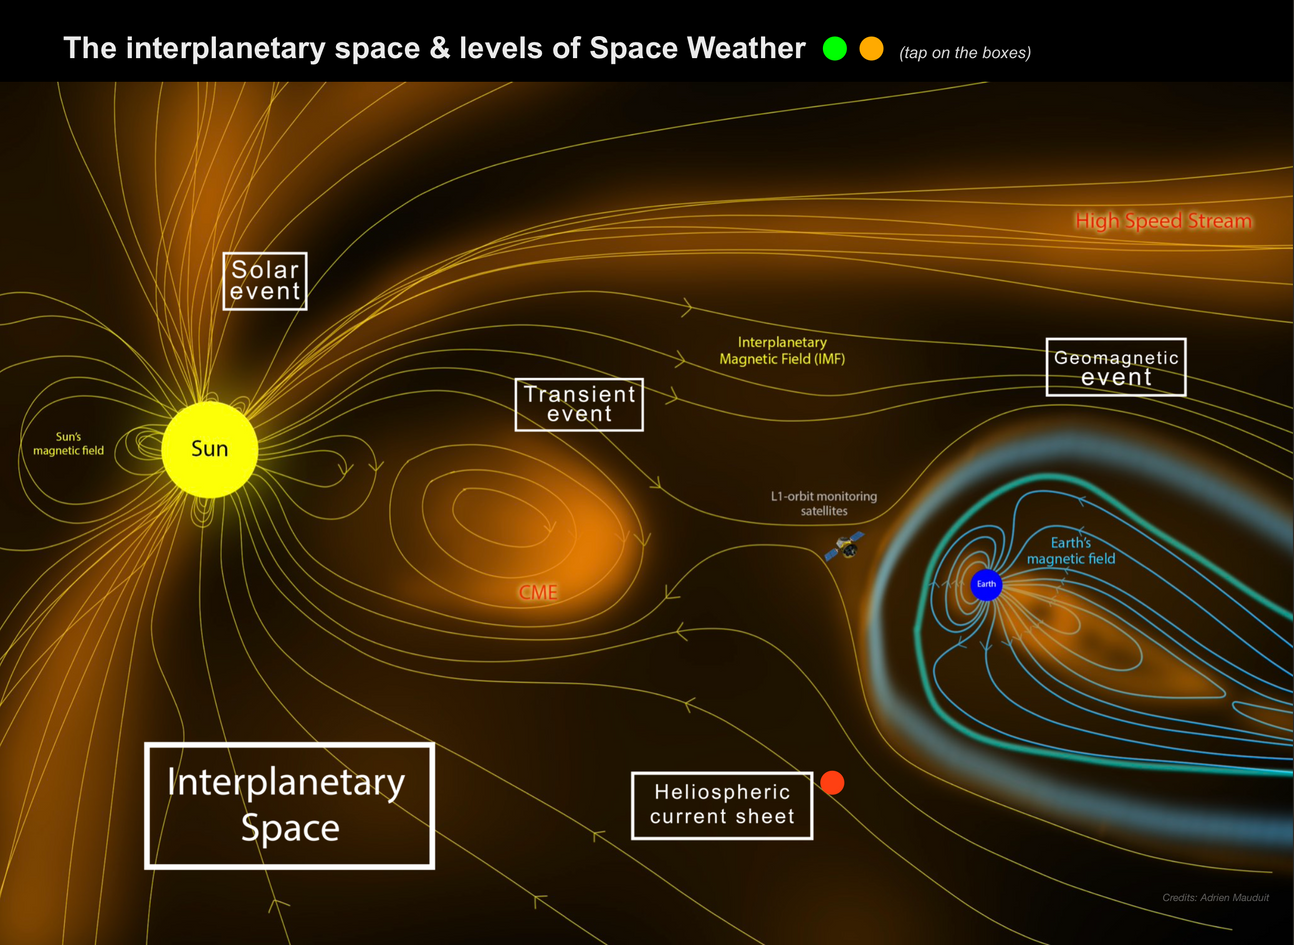 All the mechanisms of aurora-creating processes from when the solar wind leaves the Sun to when it arrives at our planet. We used all the right Space Weather jargon as well for you to familiarize yourself with the terms used in apps, websites and forecasts.  3 scales of interconnected events: solar events (CME, Coronal holes, flares...), Transient events (CH High Speed Stream, Sector Boundary Crossings, ICMEs), and gemagnetic events.